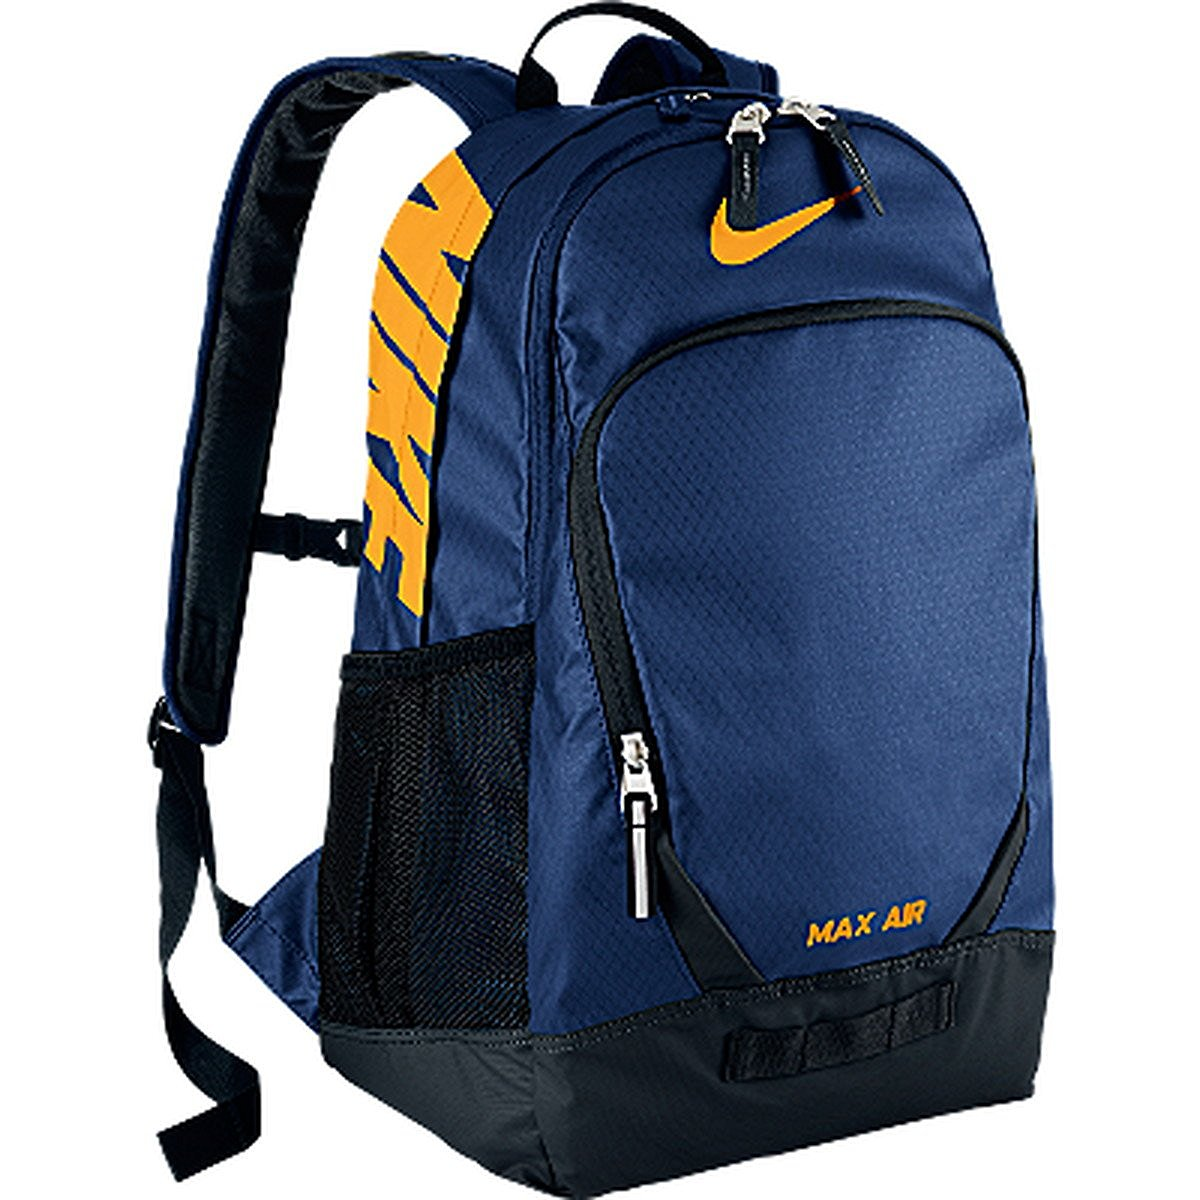 Buy Brand New Nike MAX AIR TEAM TRAINING Backpack - LARGE 15 LAPTOP ... 722584d6eb3e4